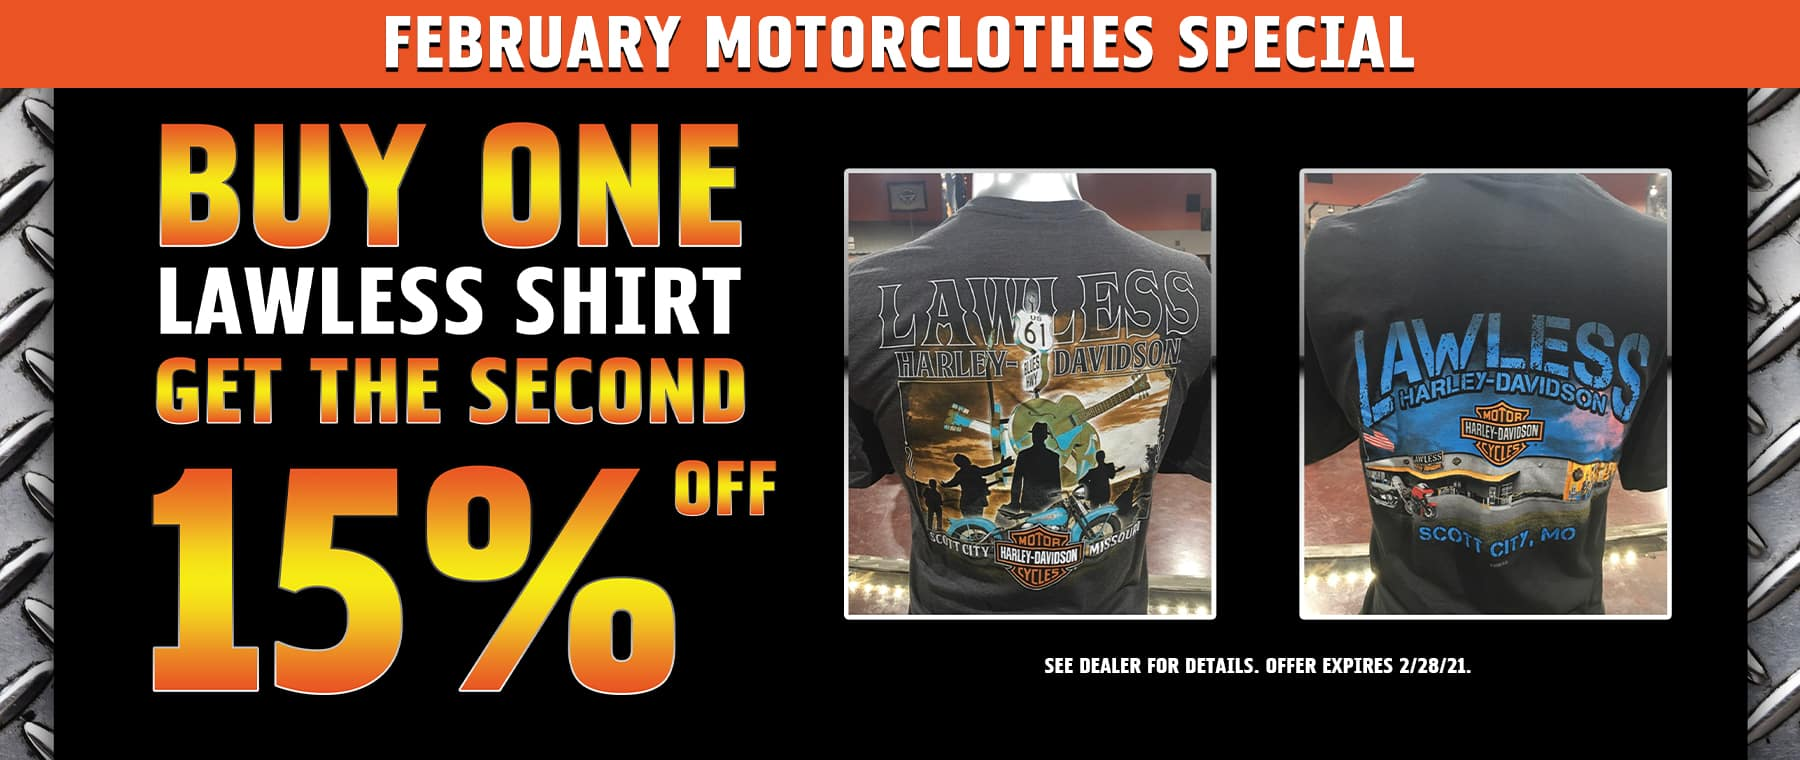 FEB Motorclothes Lawless-Slide-updated